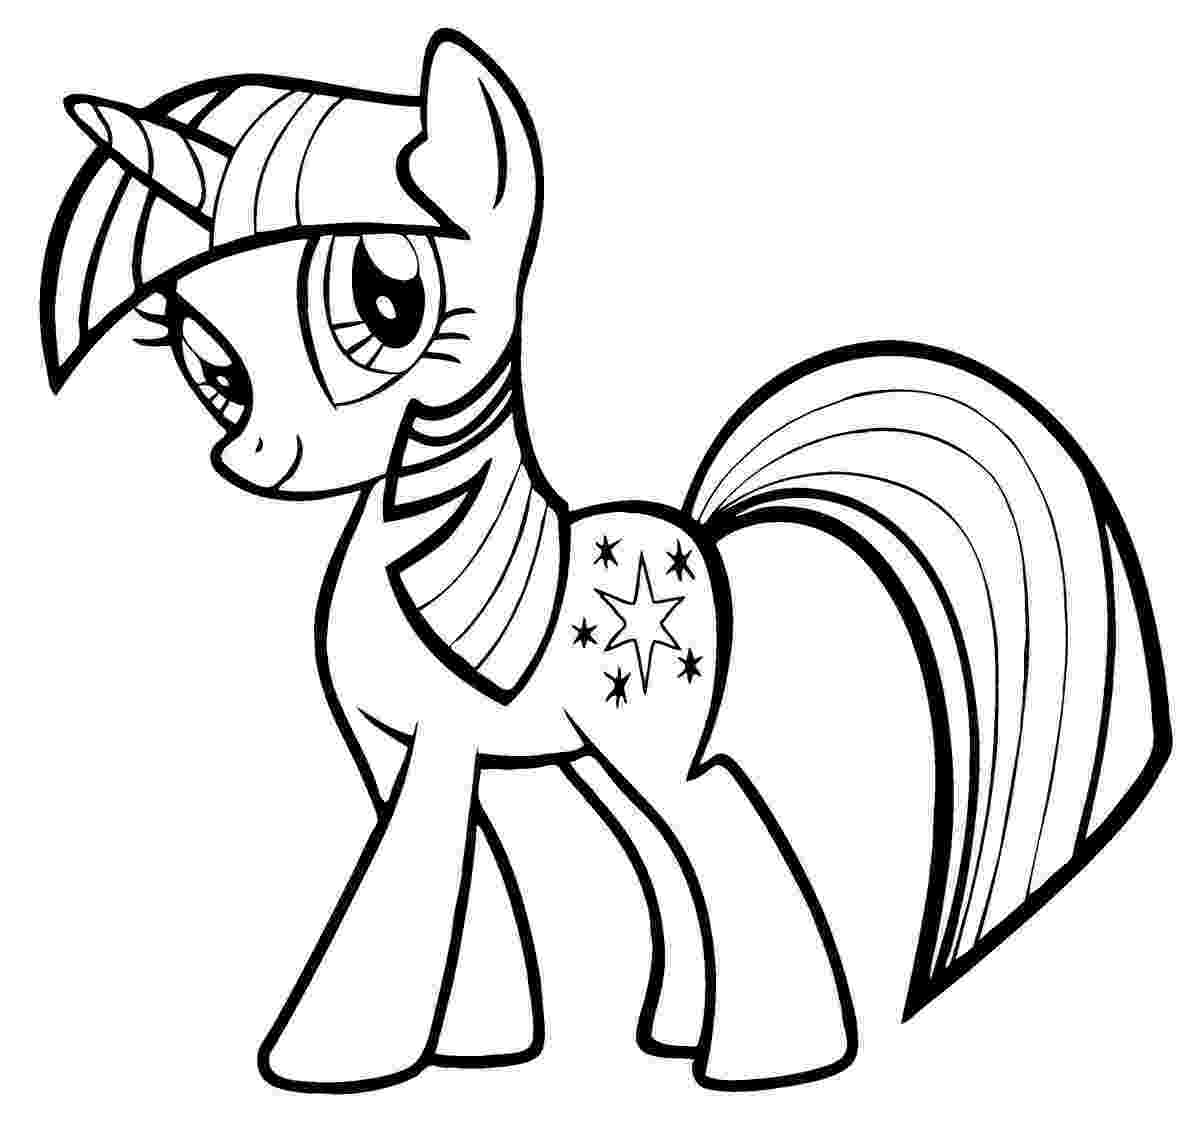 mlp coloring book games my little pony coloring pages book mlp games coloring